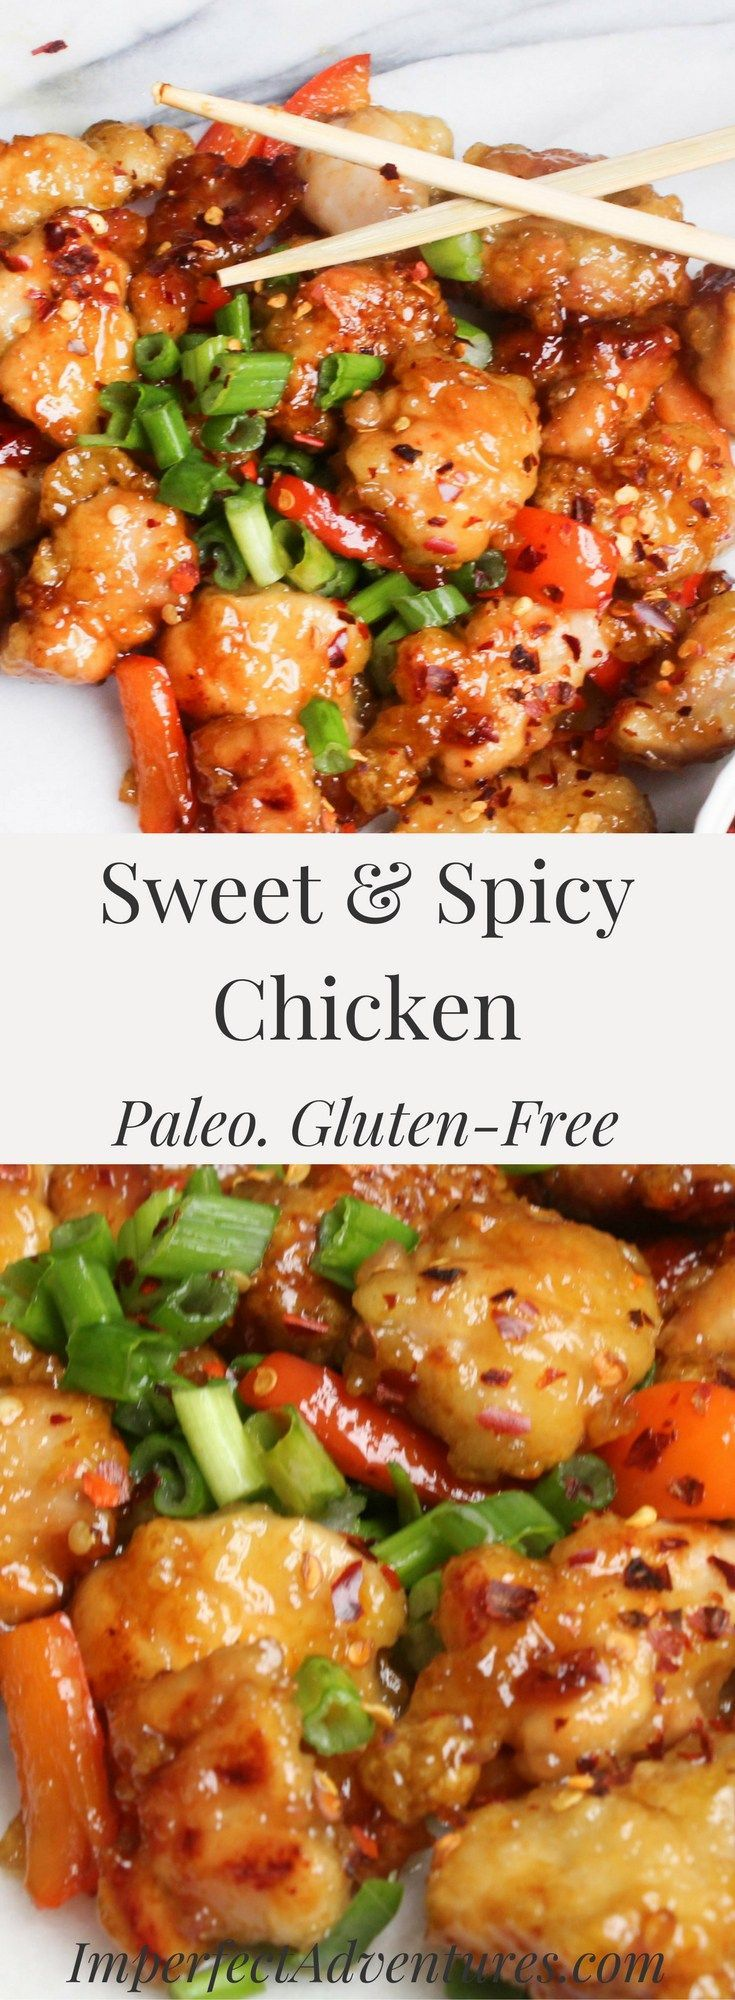 """""""Paleo Sweet & Spicy Chicken via Imperfect Adventures""""- Fitness 